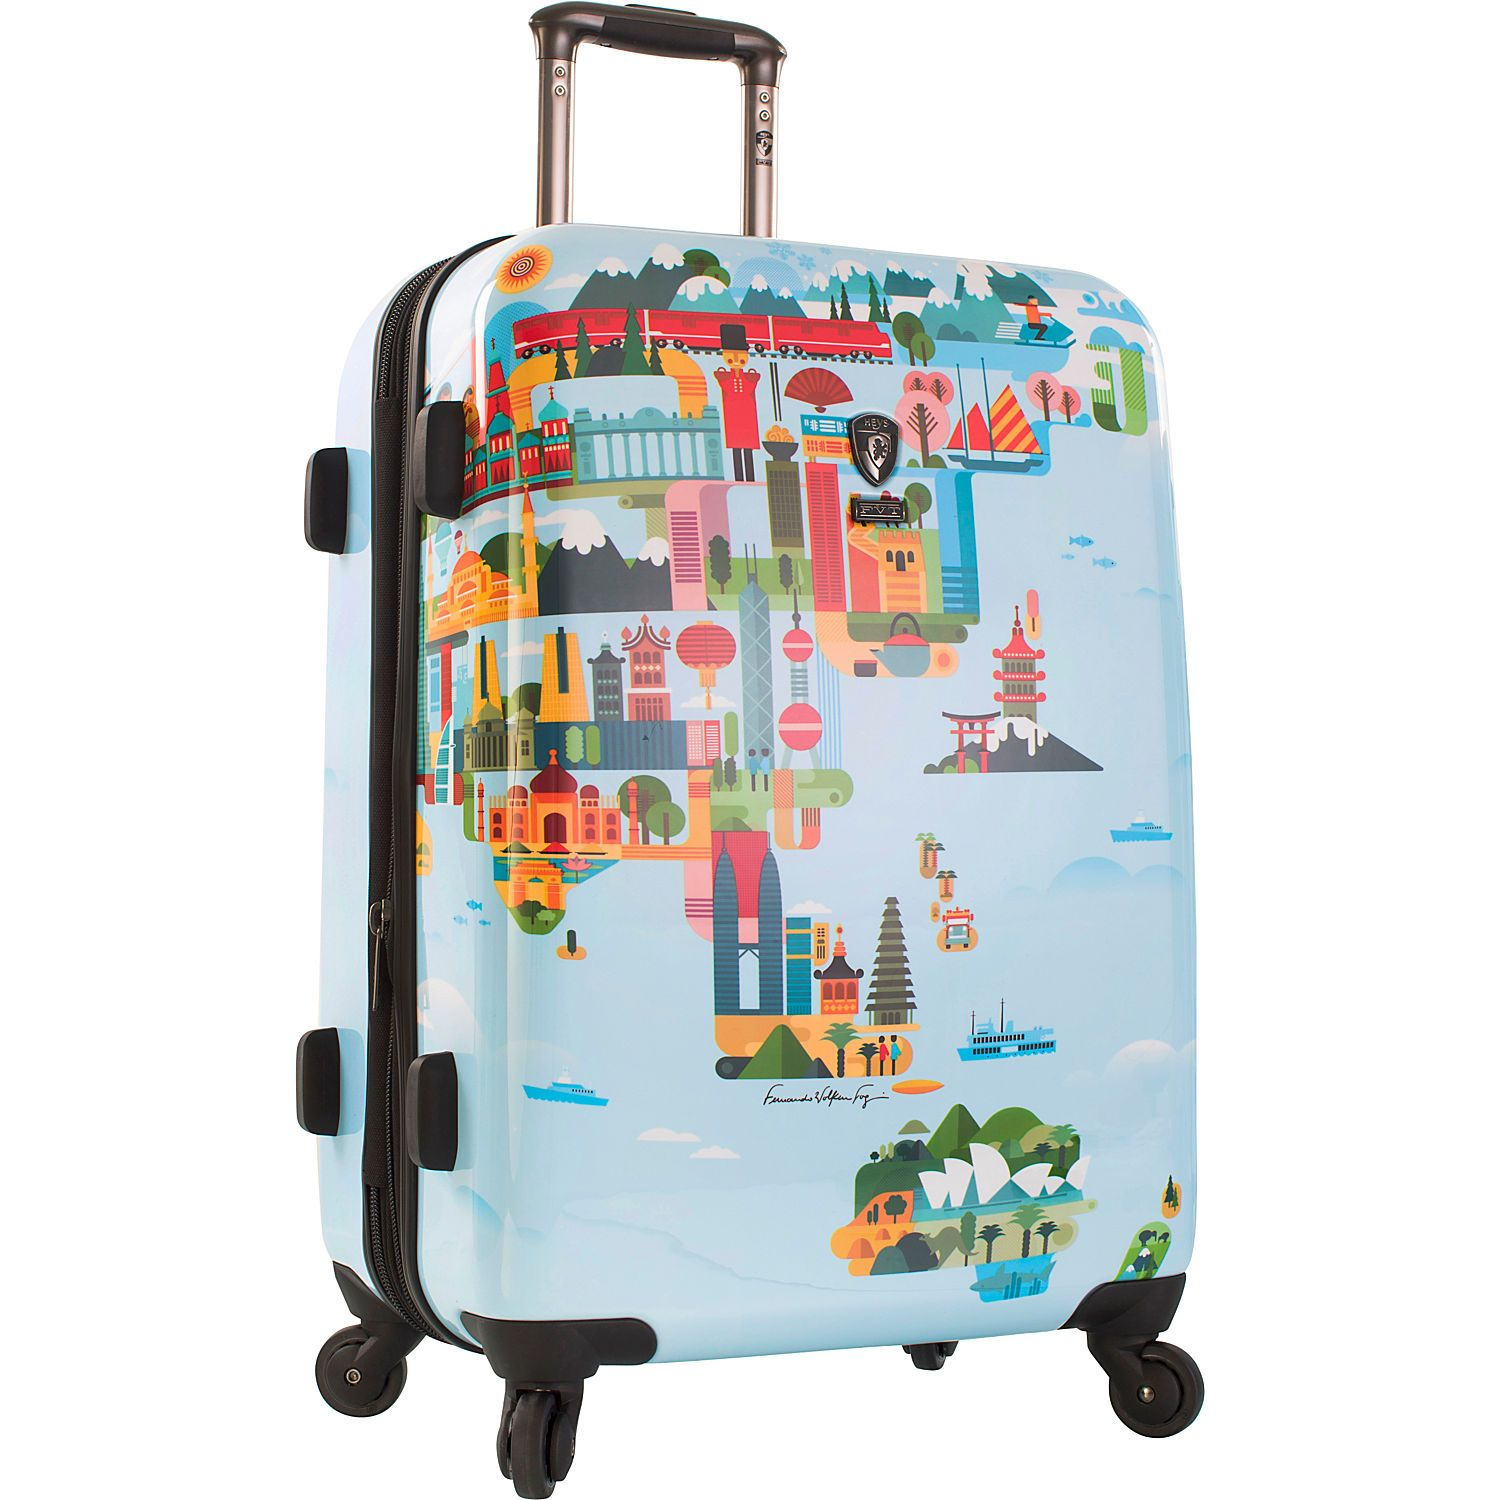 Heys america world map 26 spinner luggage ebags travel 10 bright bags that will stand out on the luggage carousel gumiabroncs Image collections